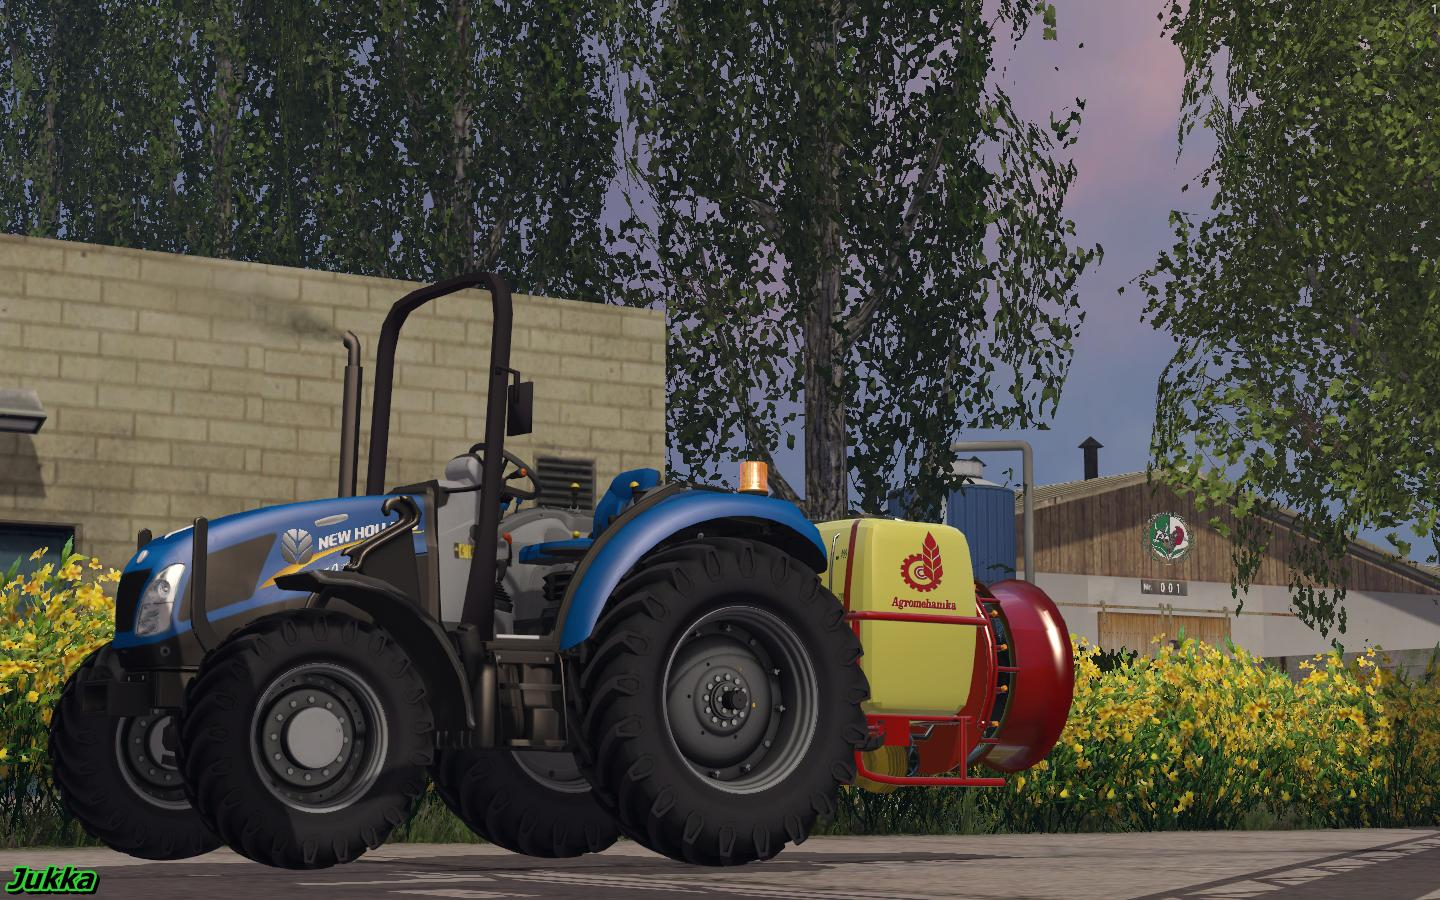 NEWHOLLAND T4.75 GARDEN EDITION TRACTOR V1